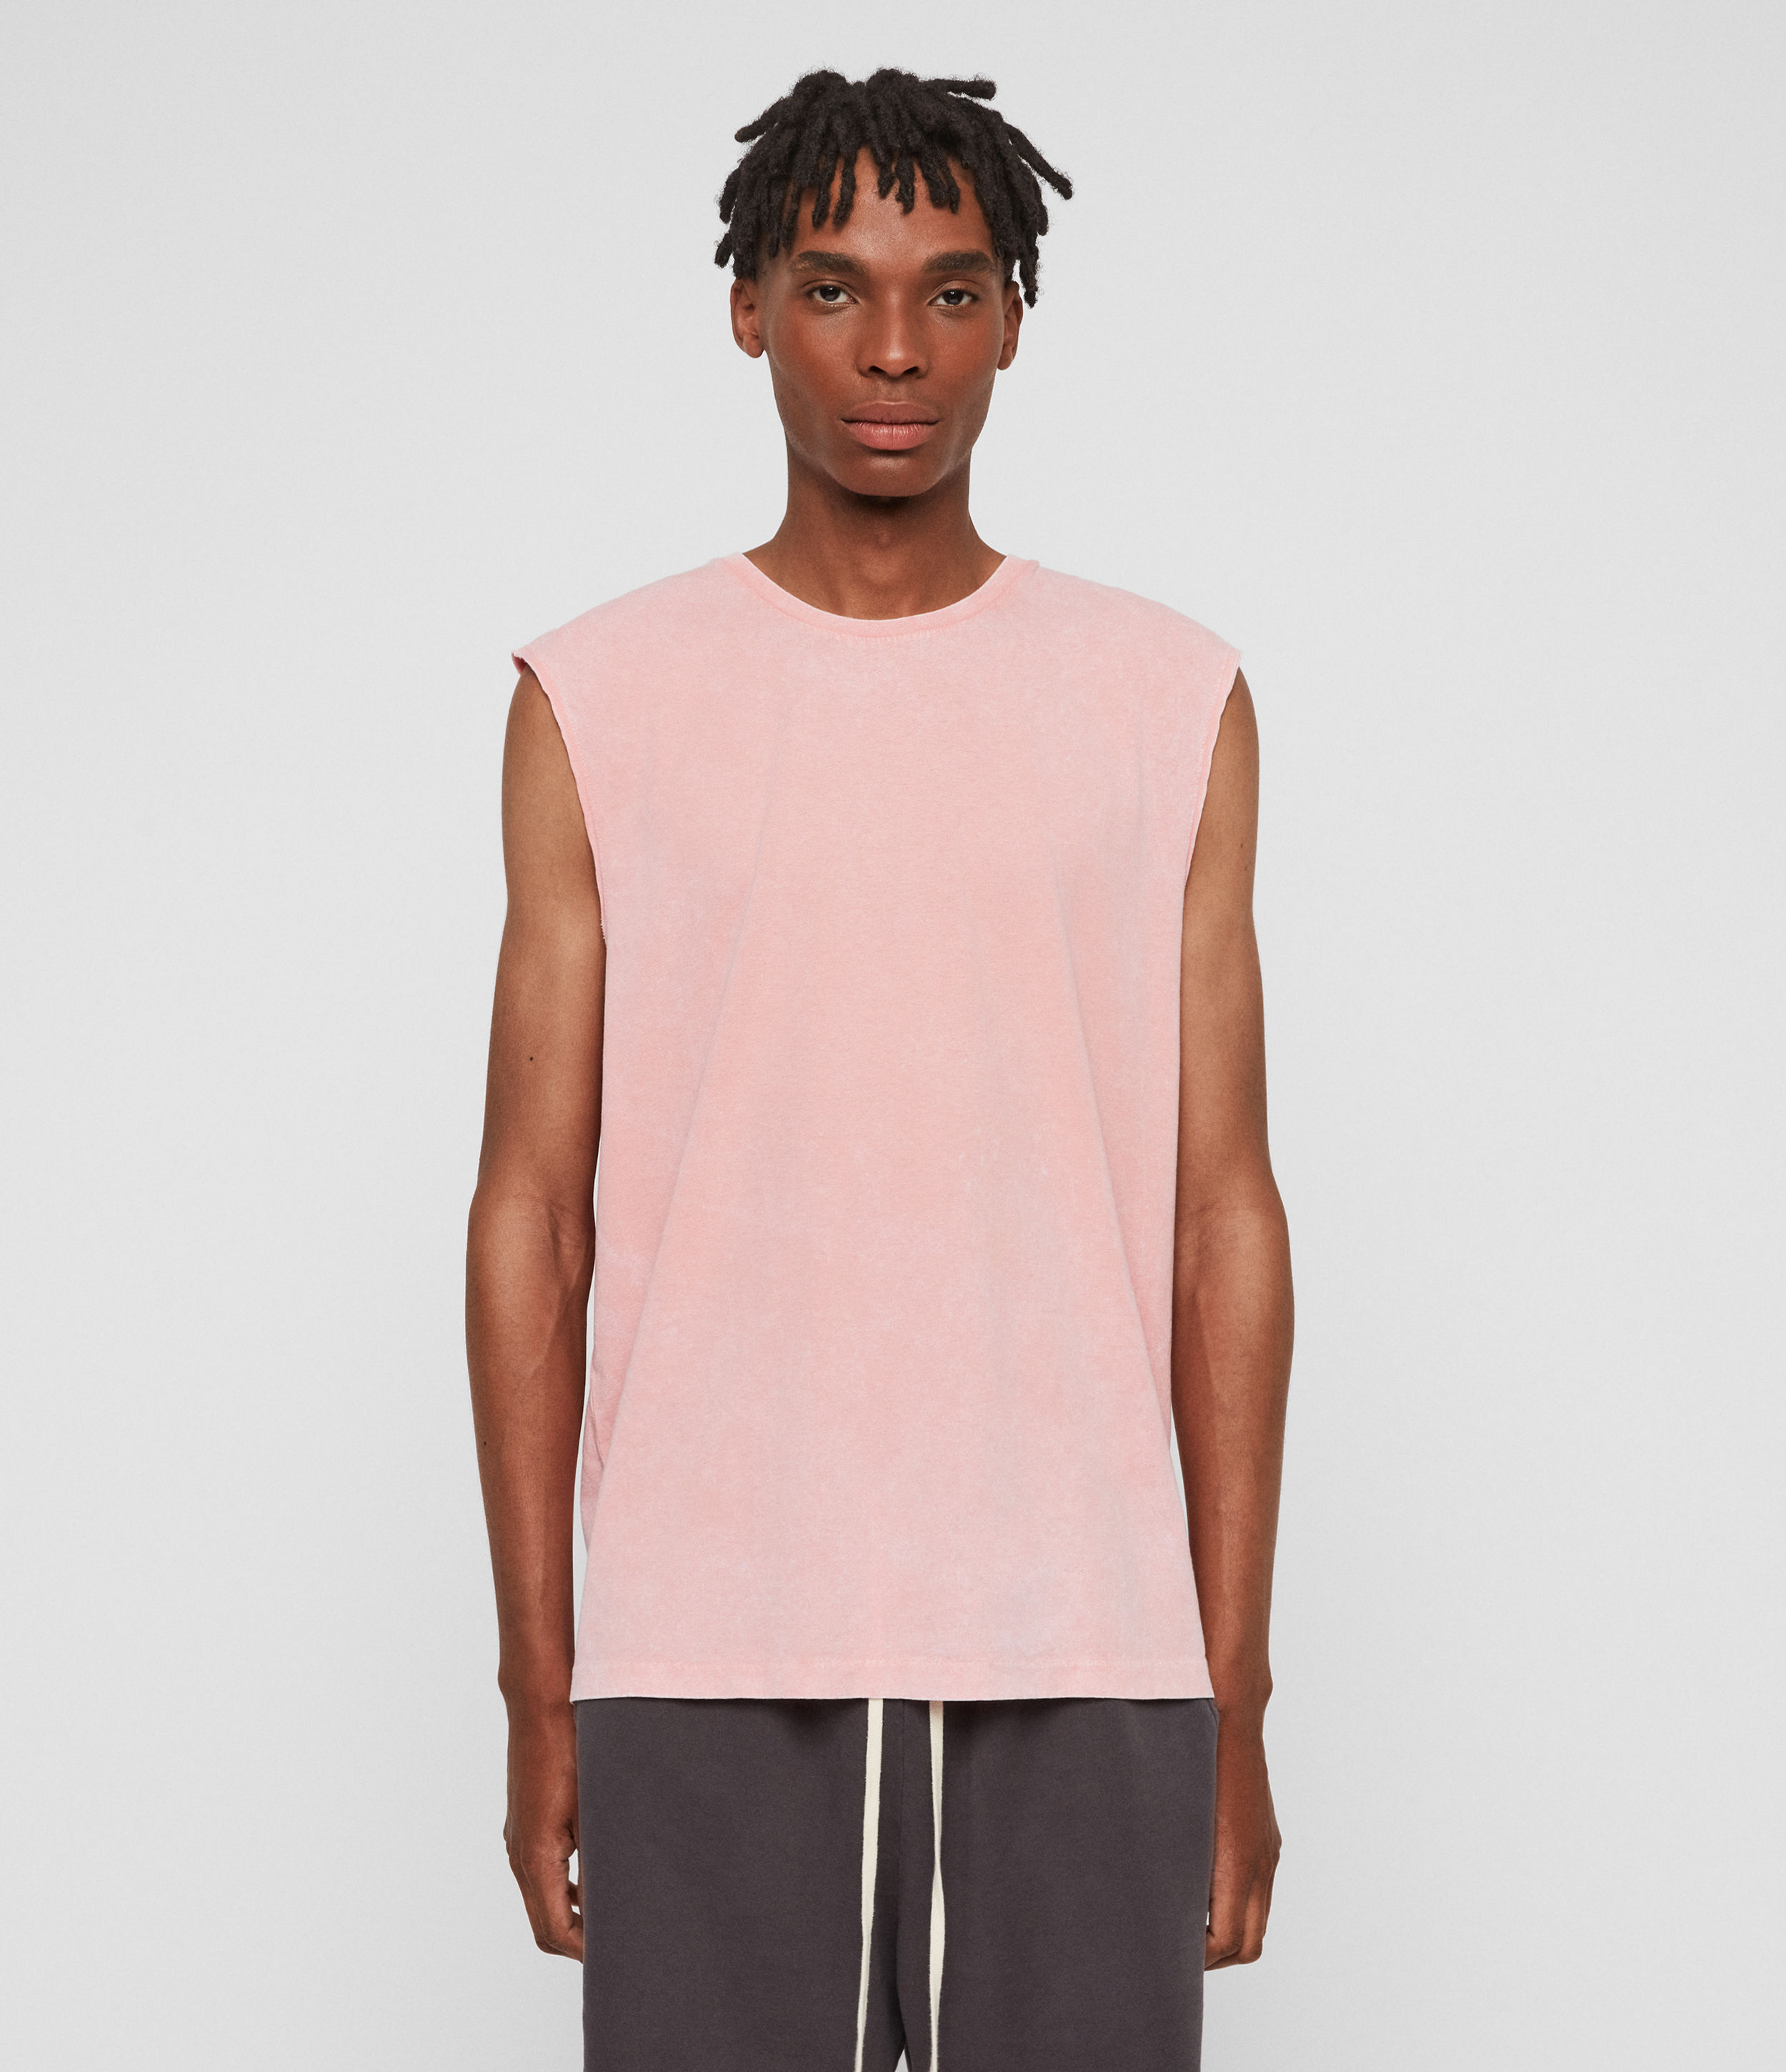 AllSaints Acetic Sleeveless Crew T-Shirt